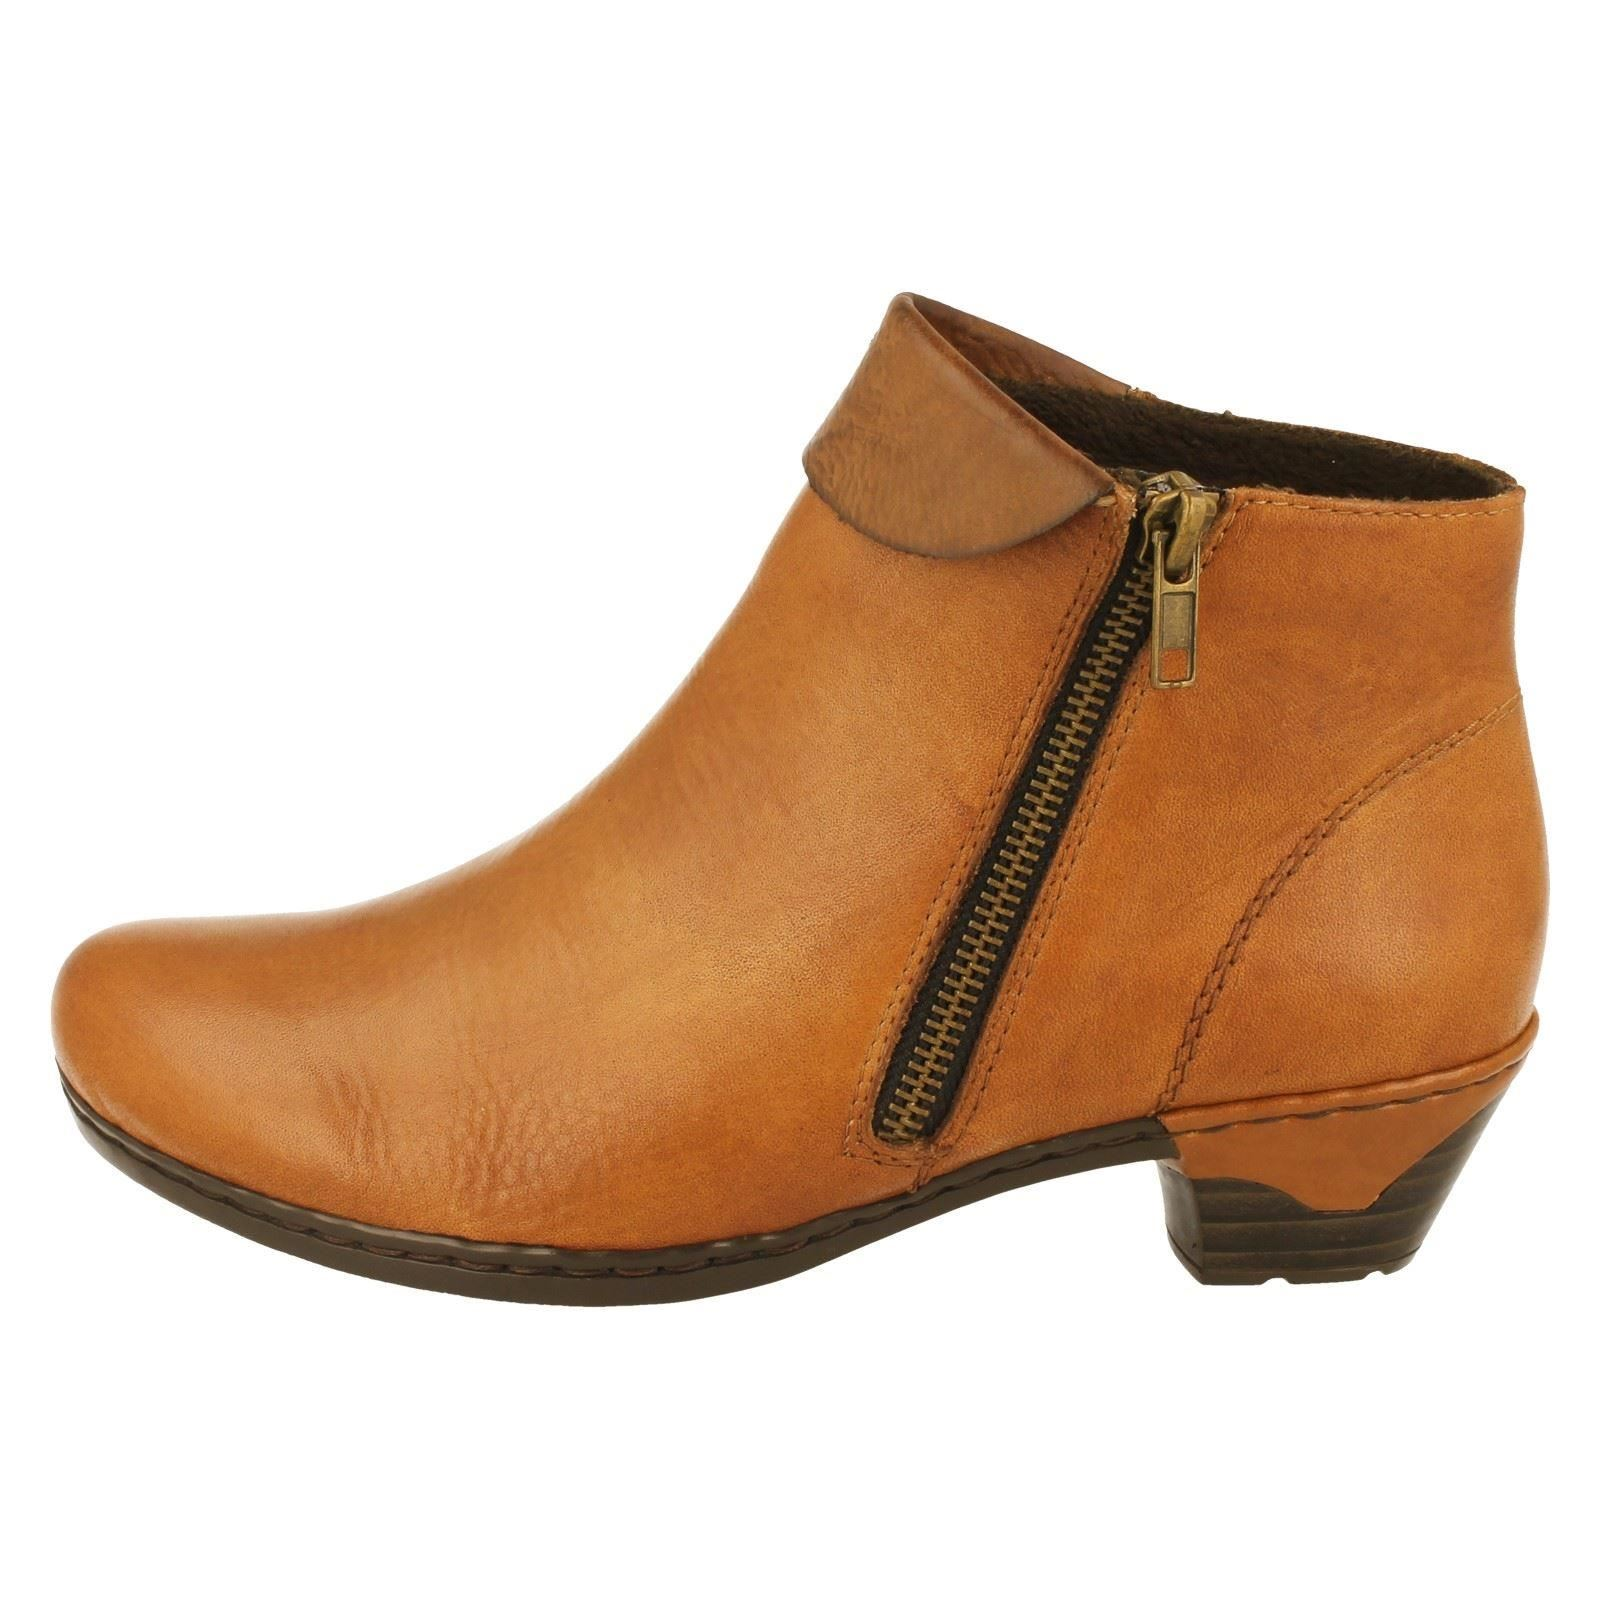 Ladies Rieker Boots The Style 76961-W